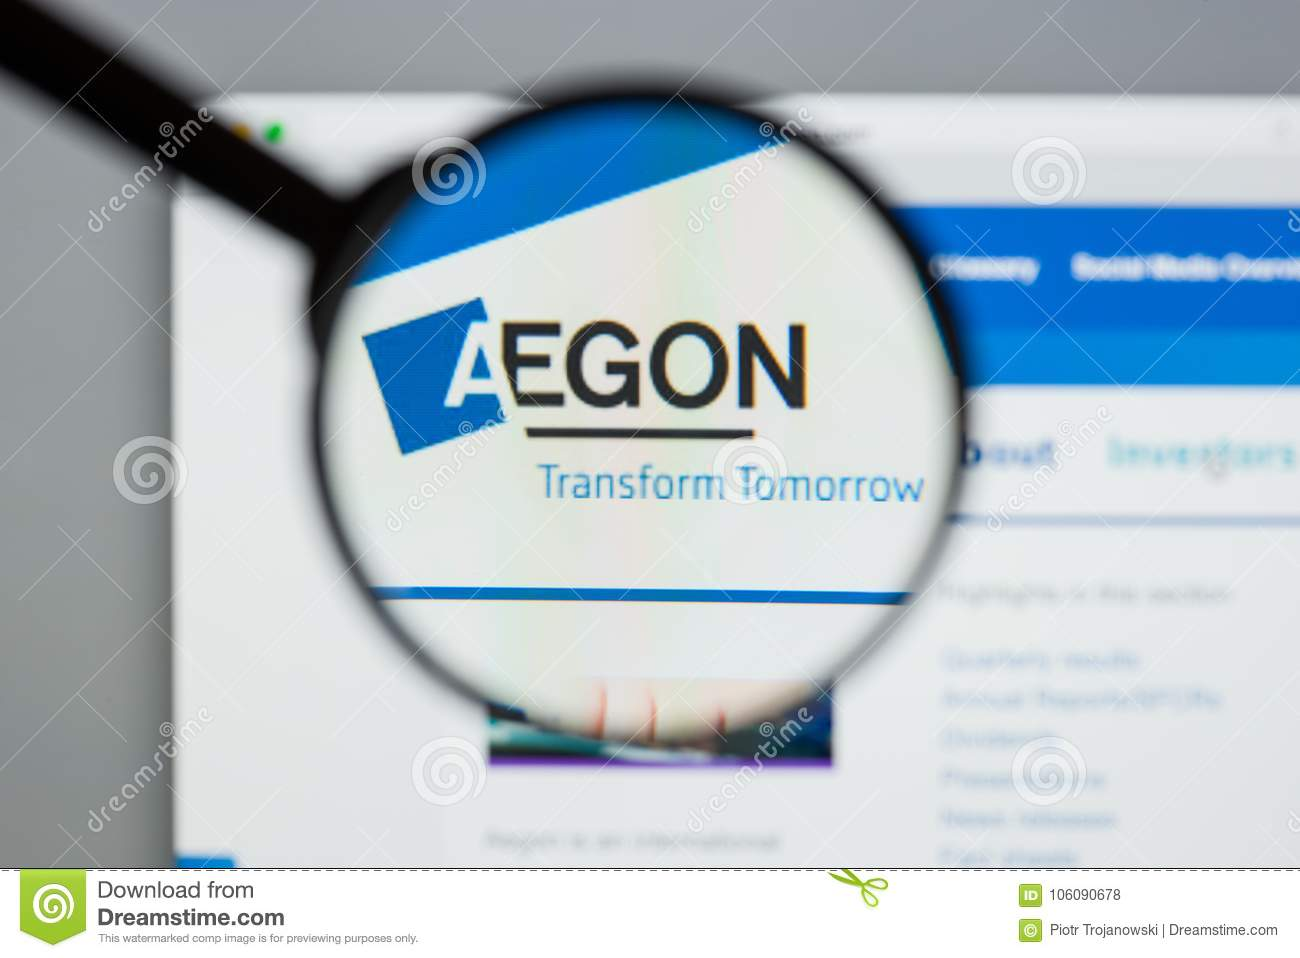 Milan, Italy - August 10, 2017: Aegon website homepage. It is a